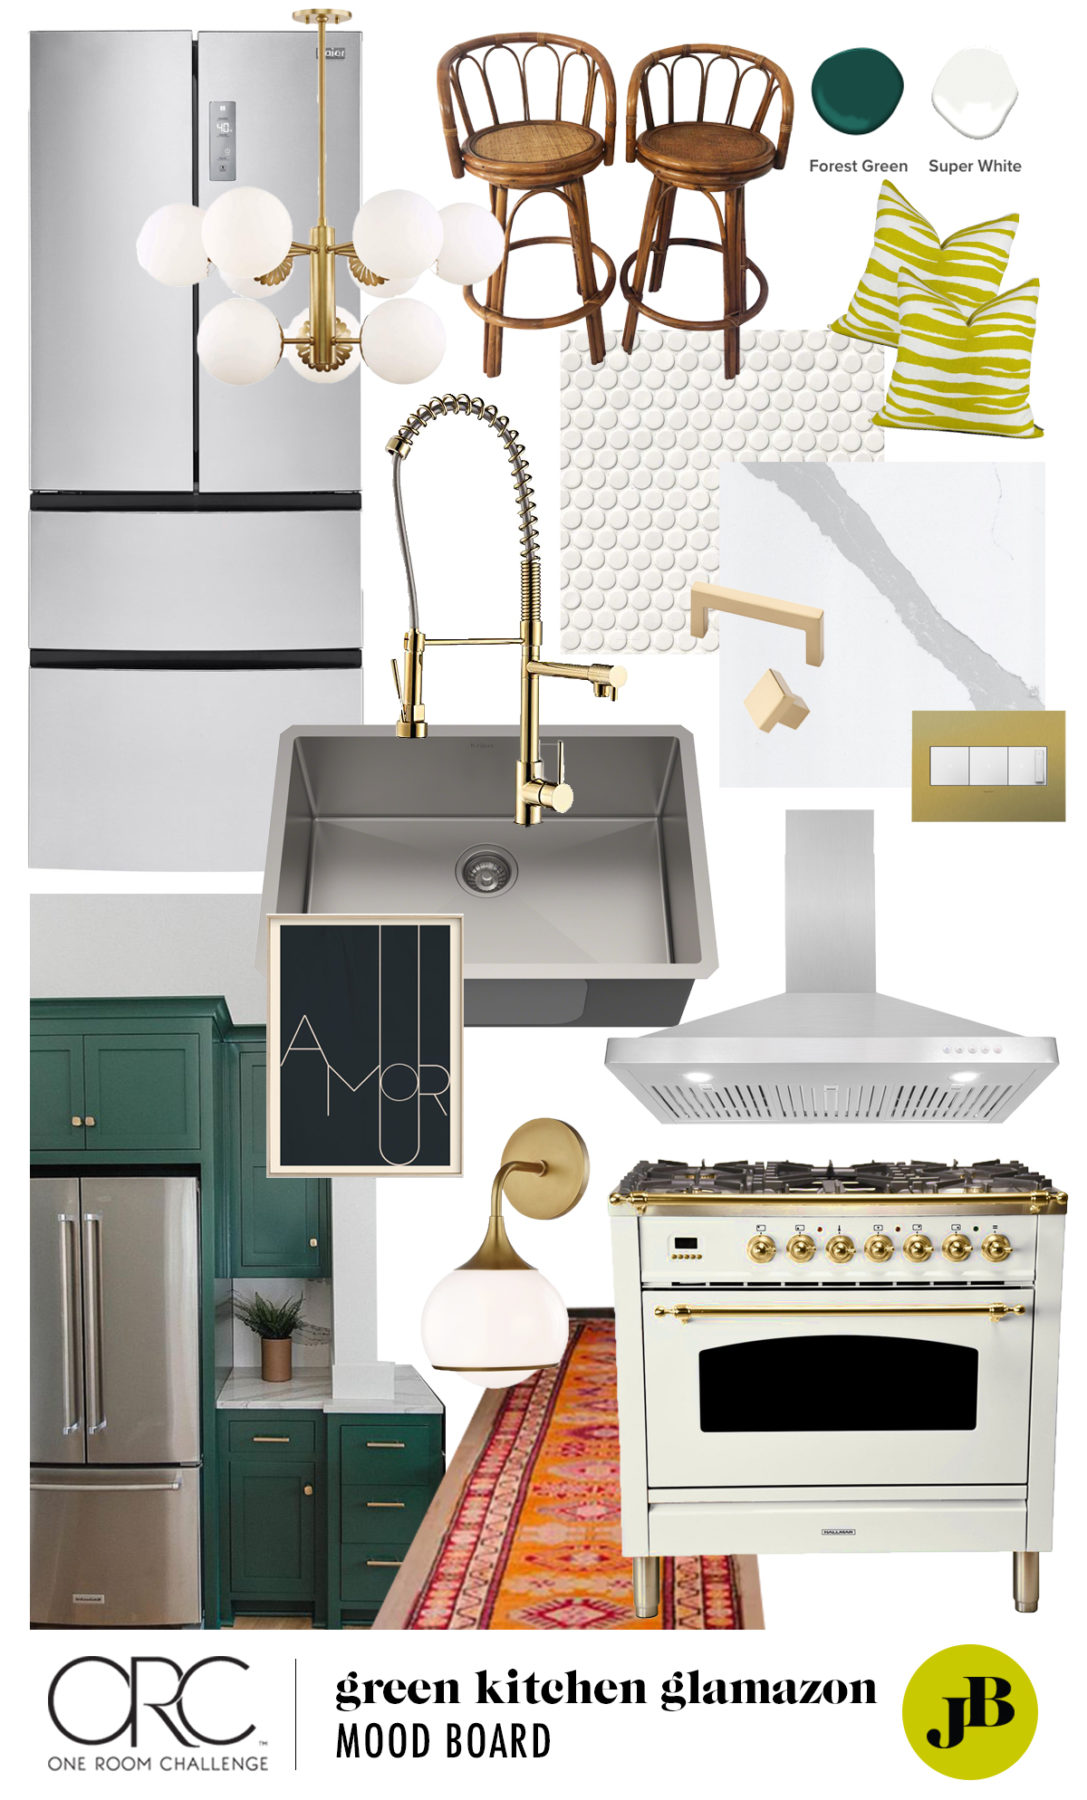 One Room Challenge | Green Kitchen Glamazon | Kitchen Mood Board | Open Kitchen Design | Kitchen Renovation | Jessica Brigham | Magazine Ready for Life | www.jessicabrigham.com